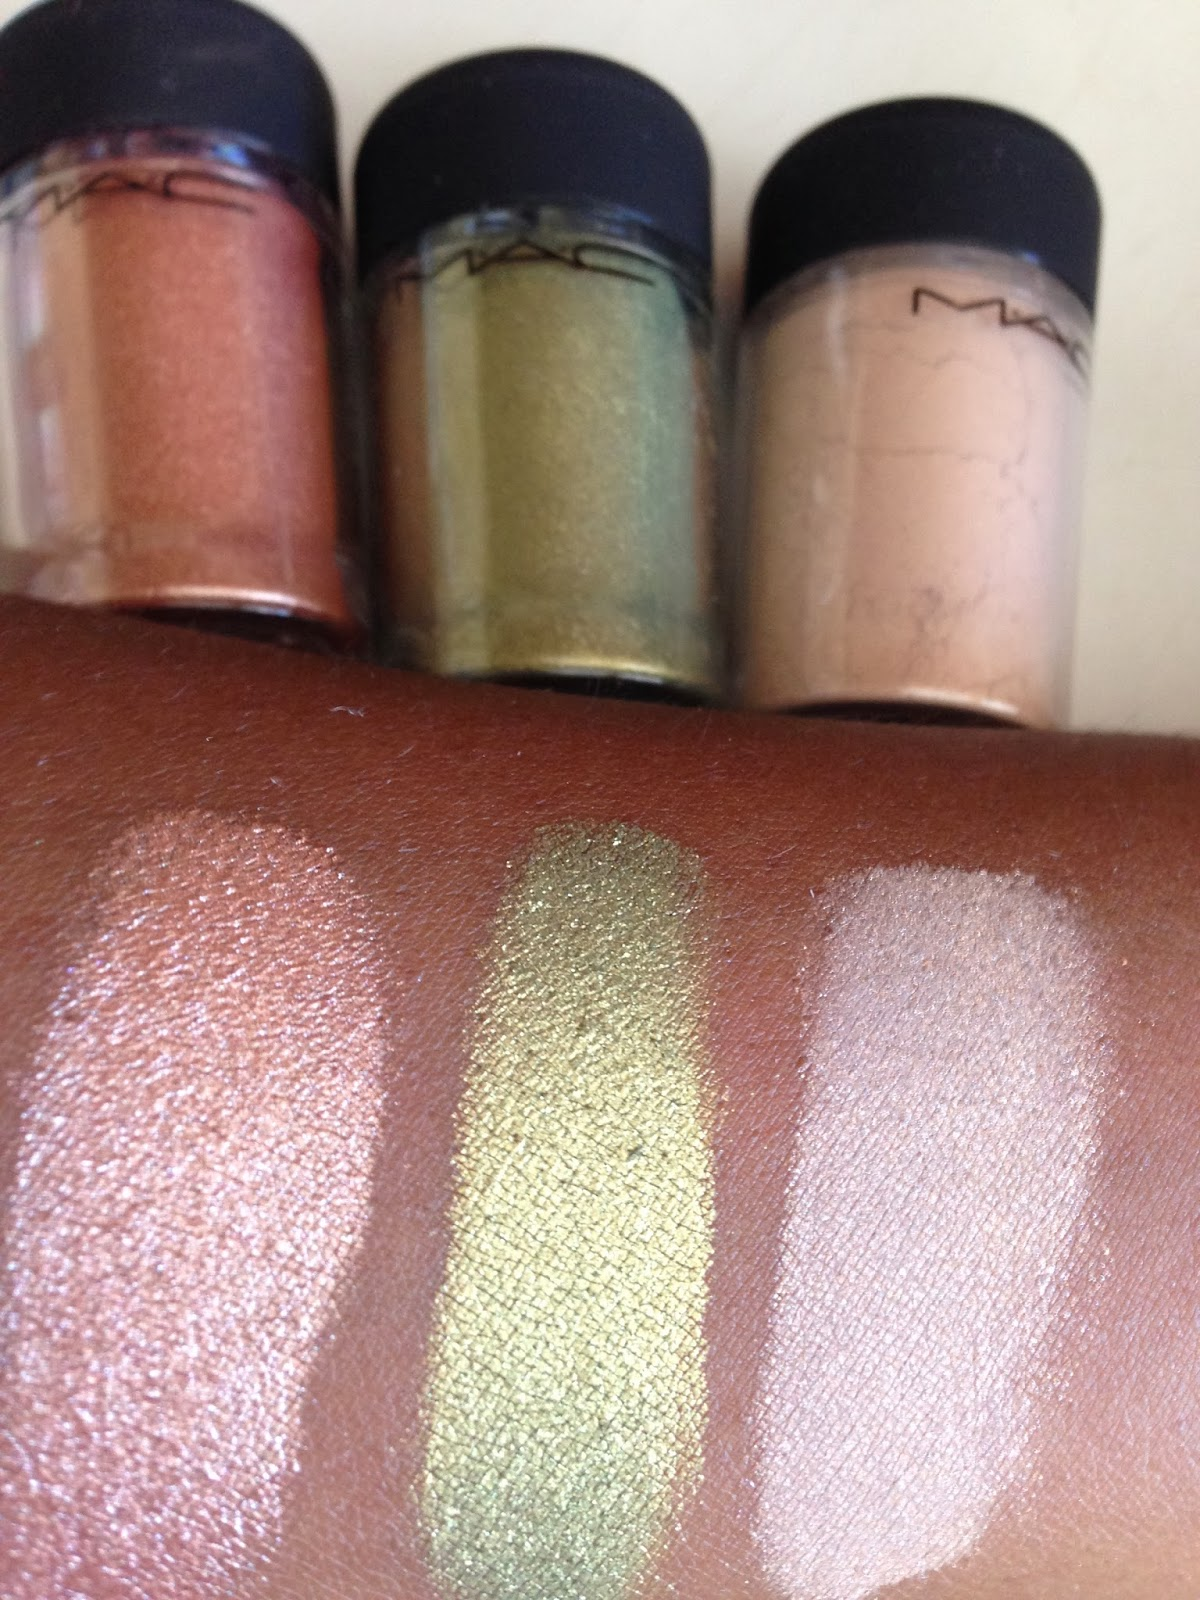 M.A.C 'Tan', 'Golden Olive' and 'Naked' Pigments www.modenmakeup.com